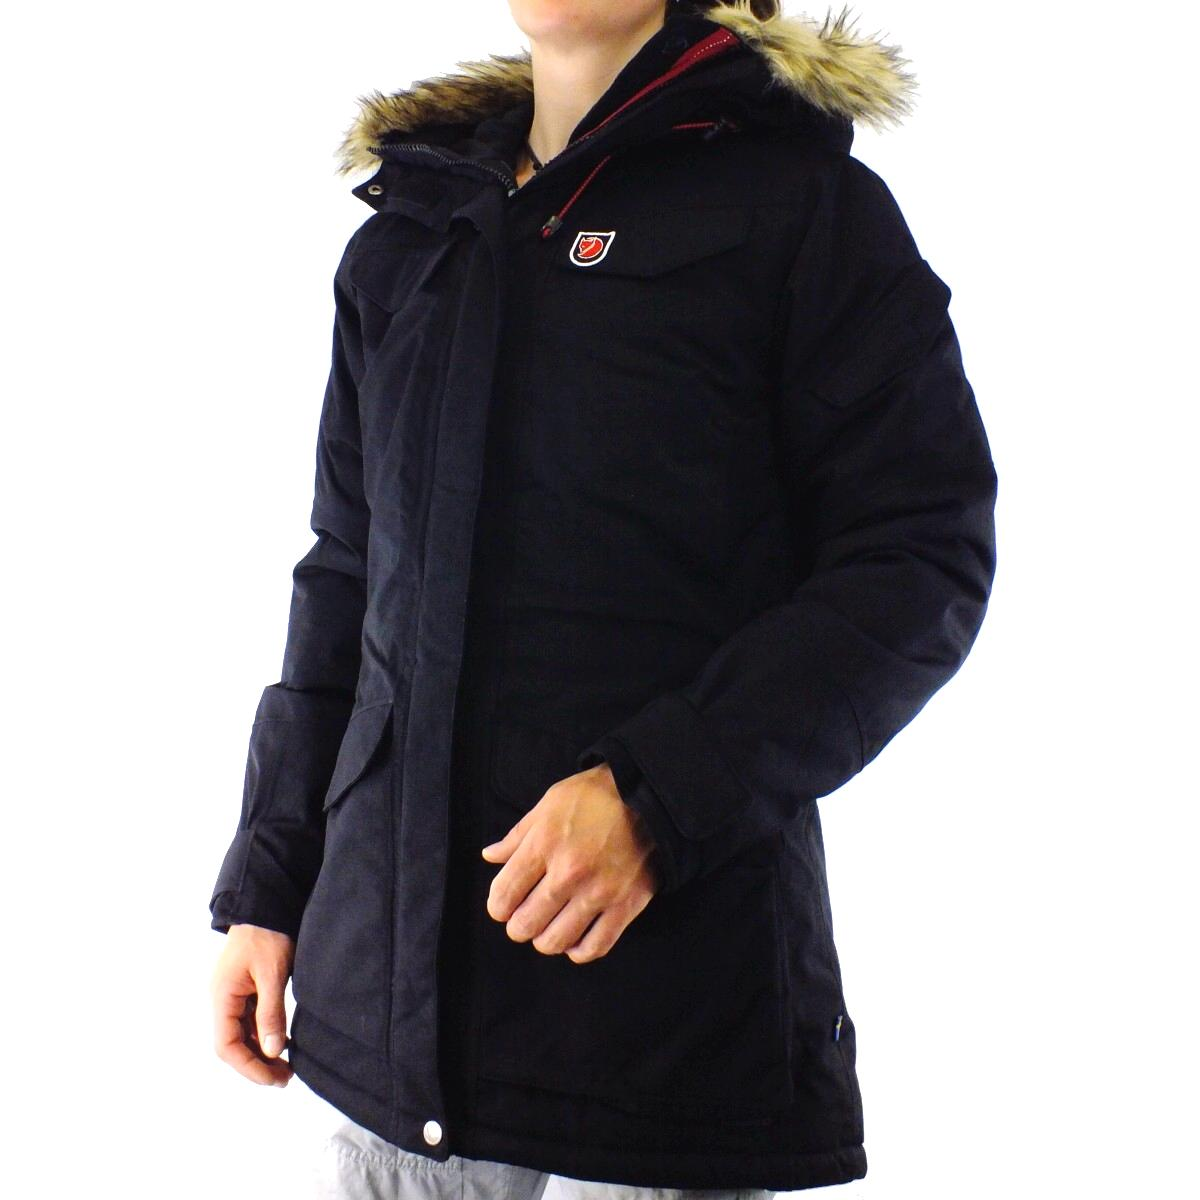 fjallr ven nuuk parka jacke parka winterjacke outdoor damen schwarz winterparka ebay. Black Bedroom Furniture Sets. Home Design Ideas